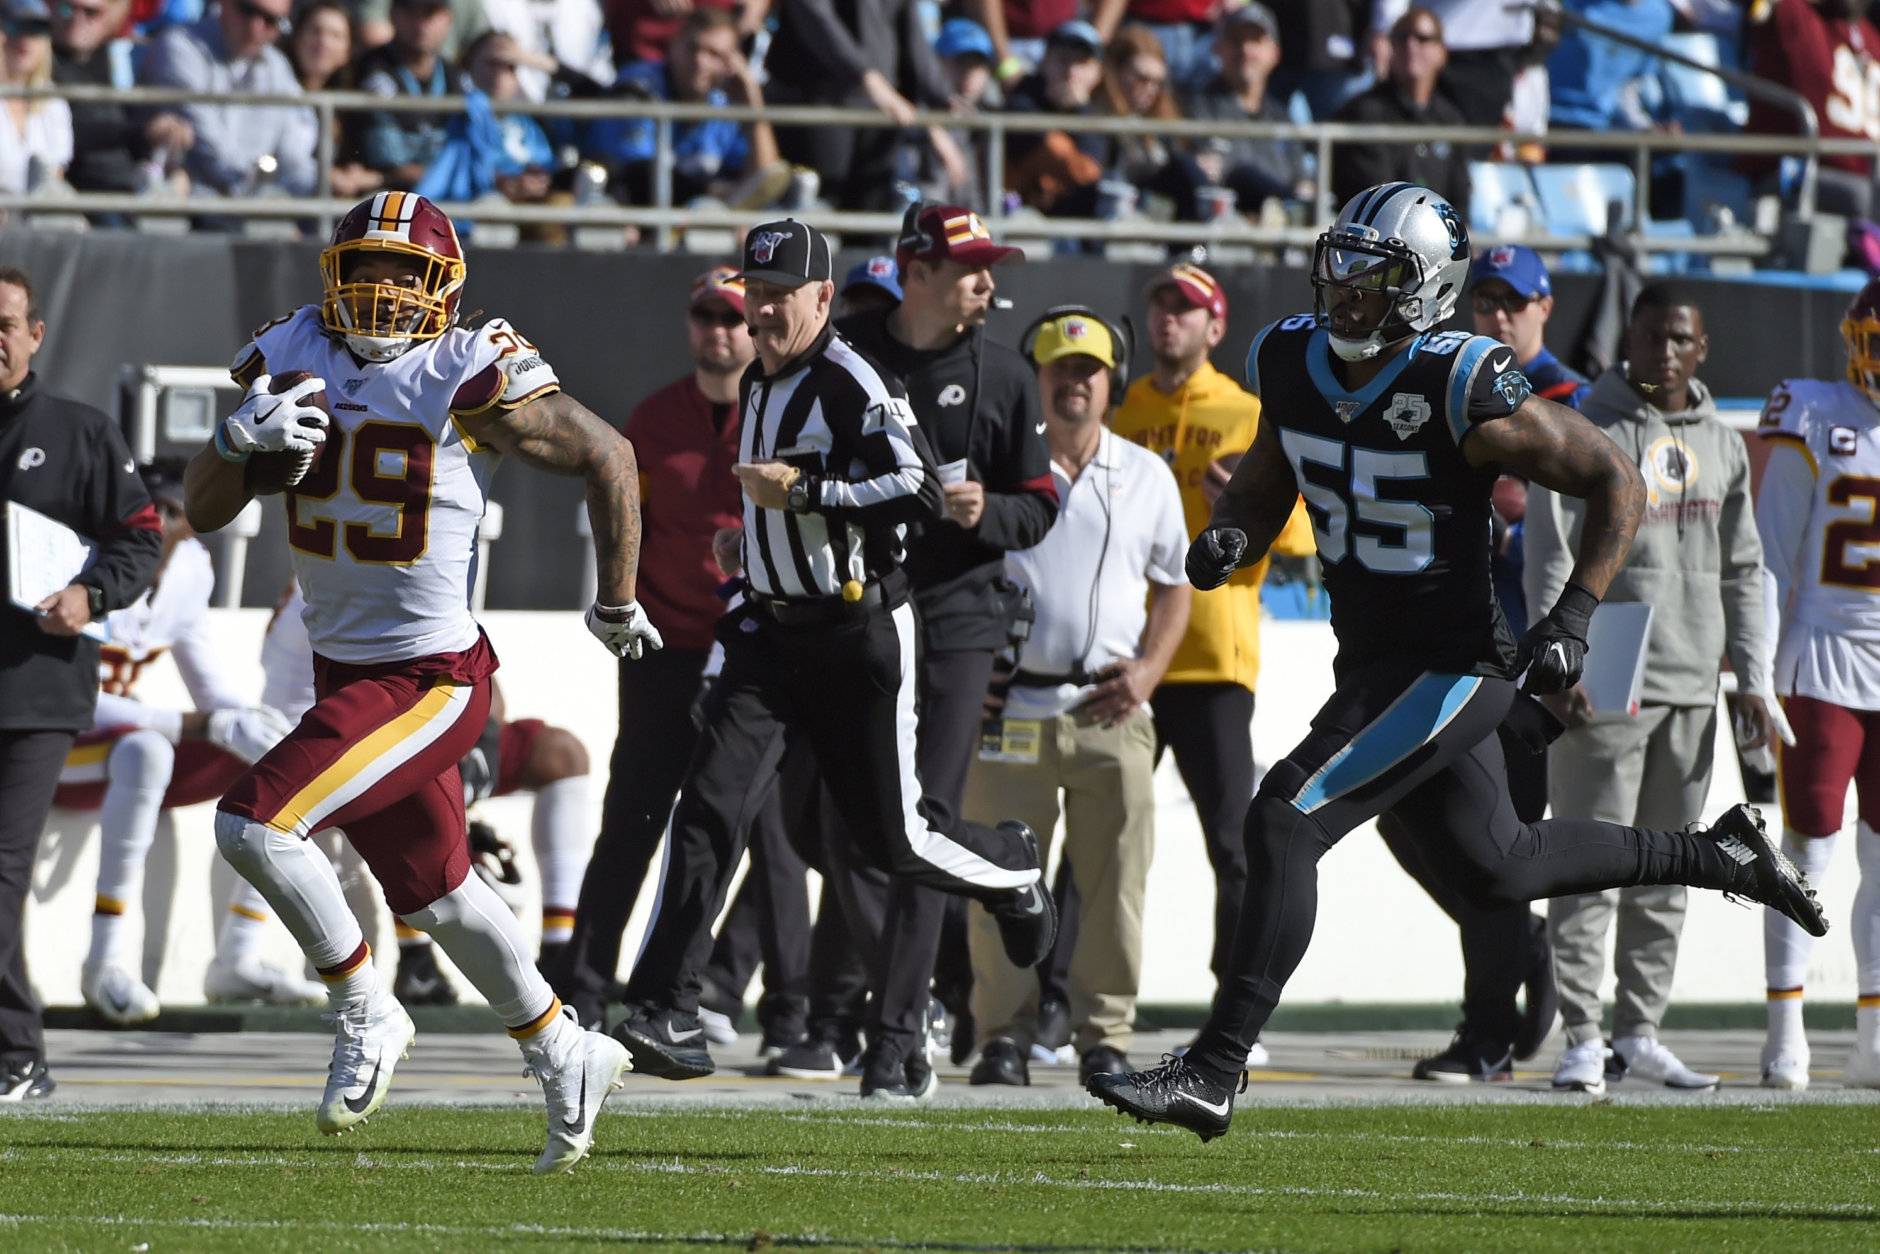 <p><b><i>Redskins 29</i></b><br /> <b><i>Panthers 21</i></b></p> <p>The Redskins got the breakout game from Derrius Guice they&#8217;ve been waiting for. Fabian Moreau grabbed his third interception in the last two games and rookies Montez Sweat (1.5 sacks) and Kelvin Harmon (51 yards on three catches) had solid outings. If this organization ever got some worthwhile leadership, their future would actually be kinda bright.</p>